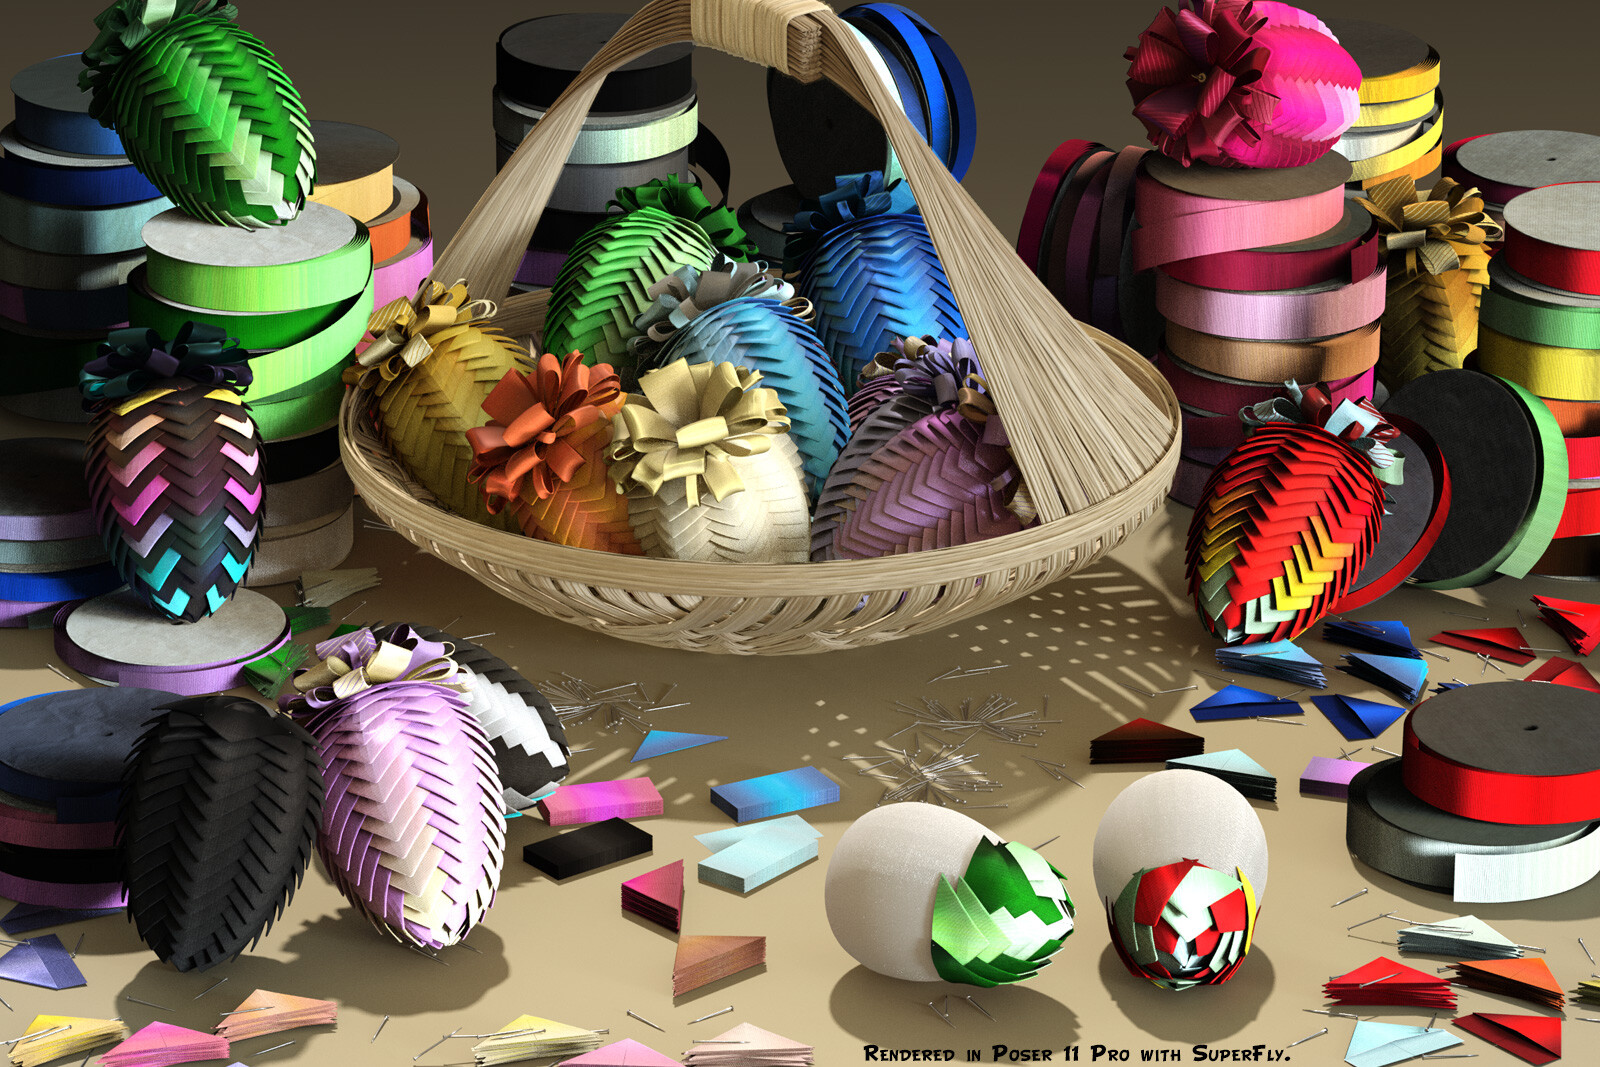 This is the main promo image, which shows how the materials appear when rendered with SuperFly (Cycles) in Poser.